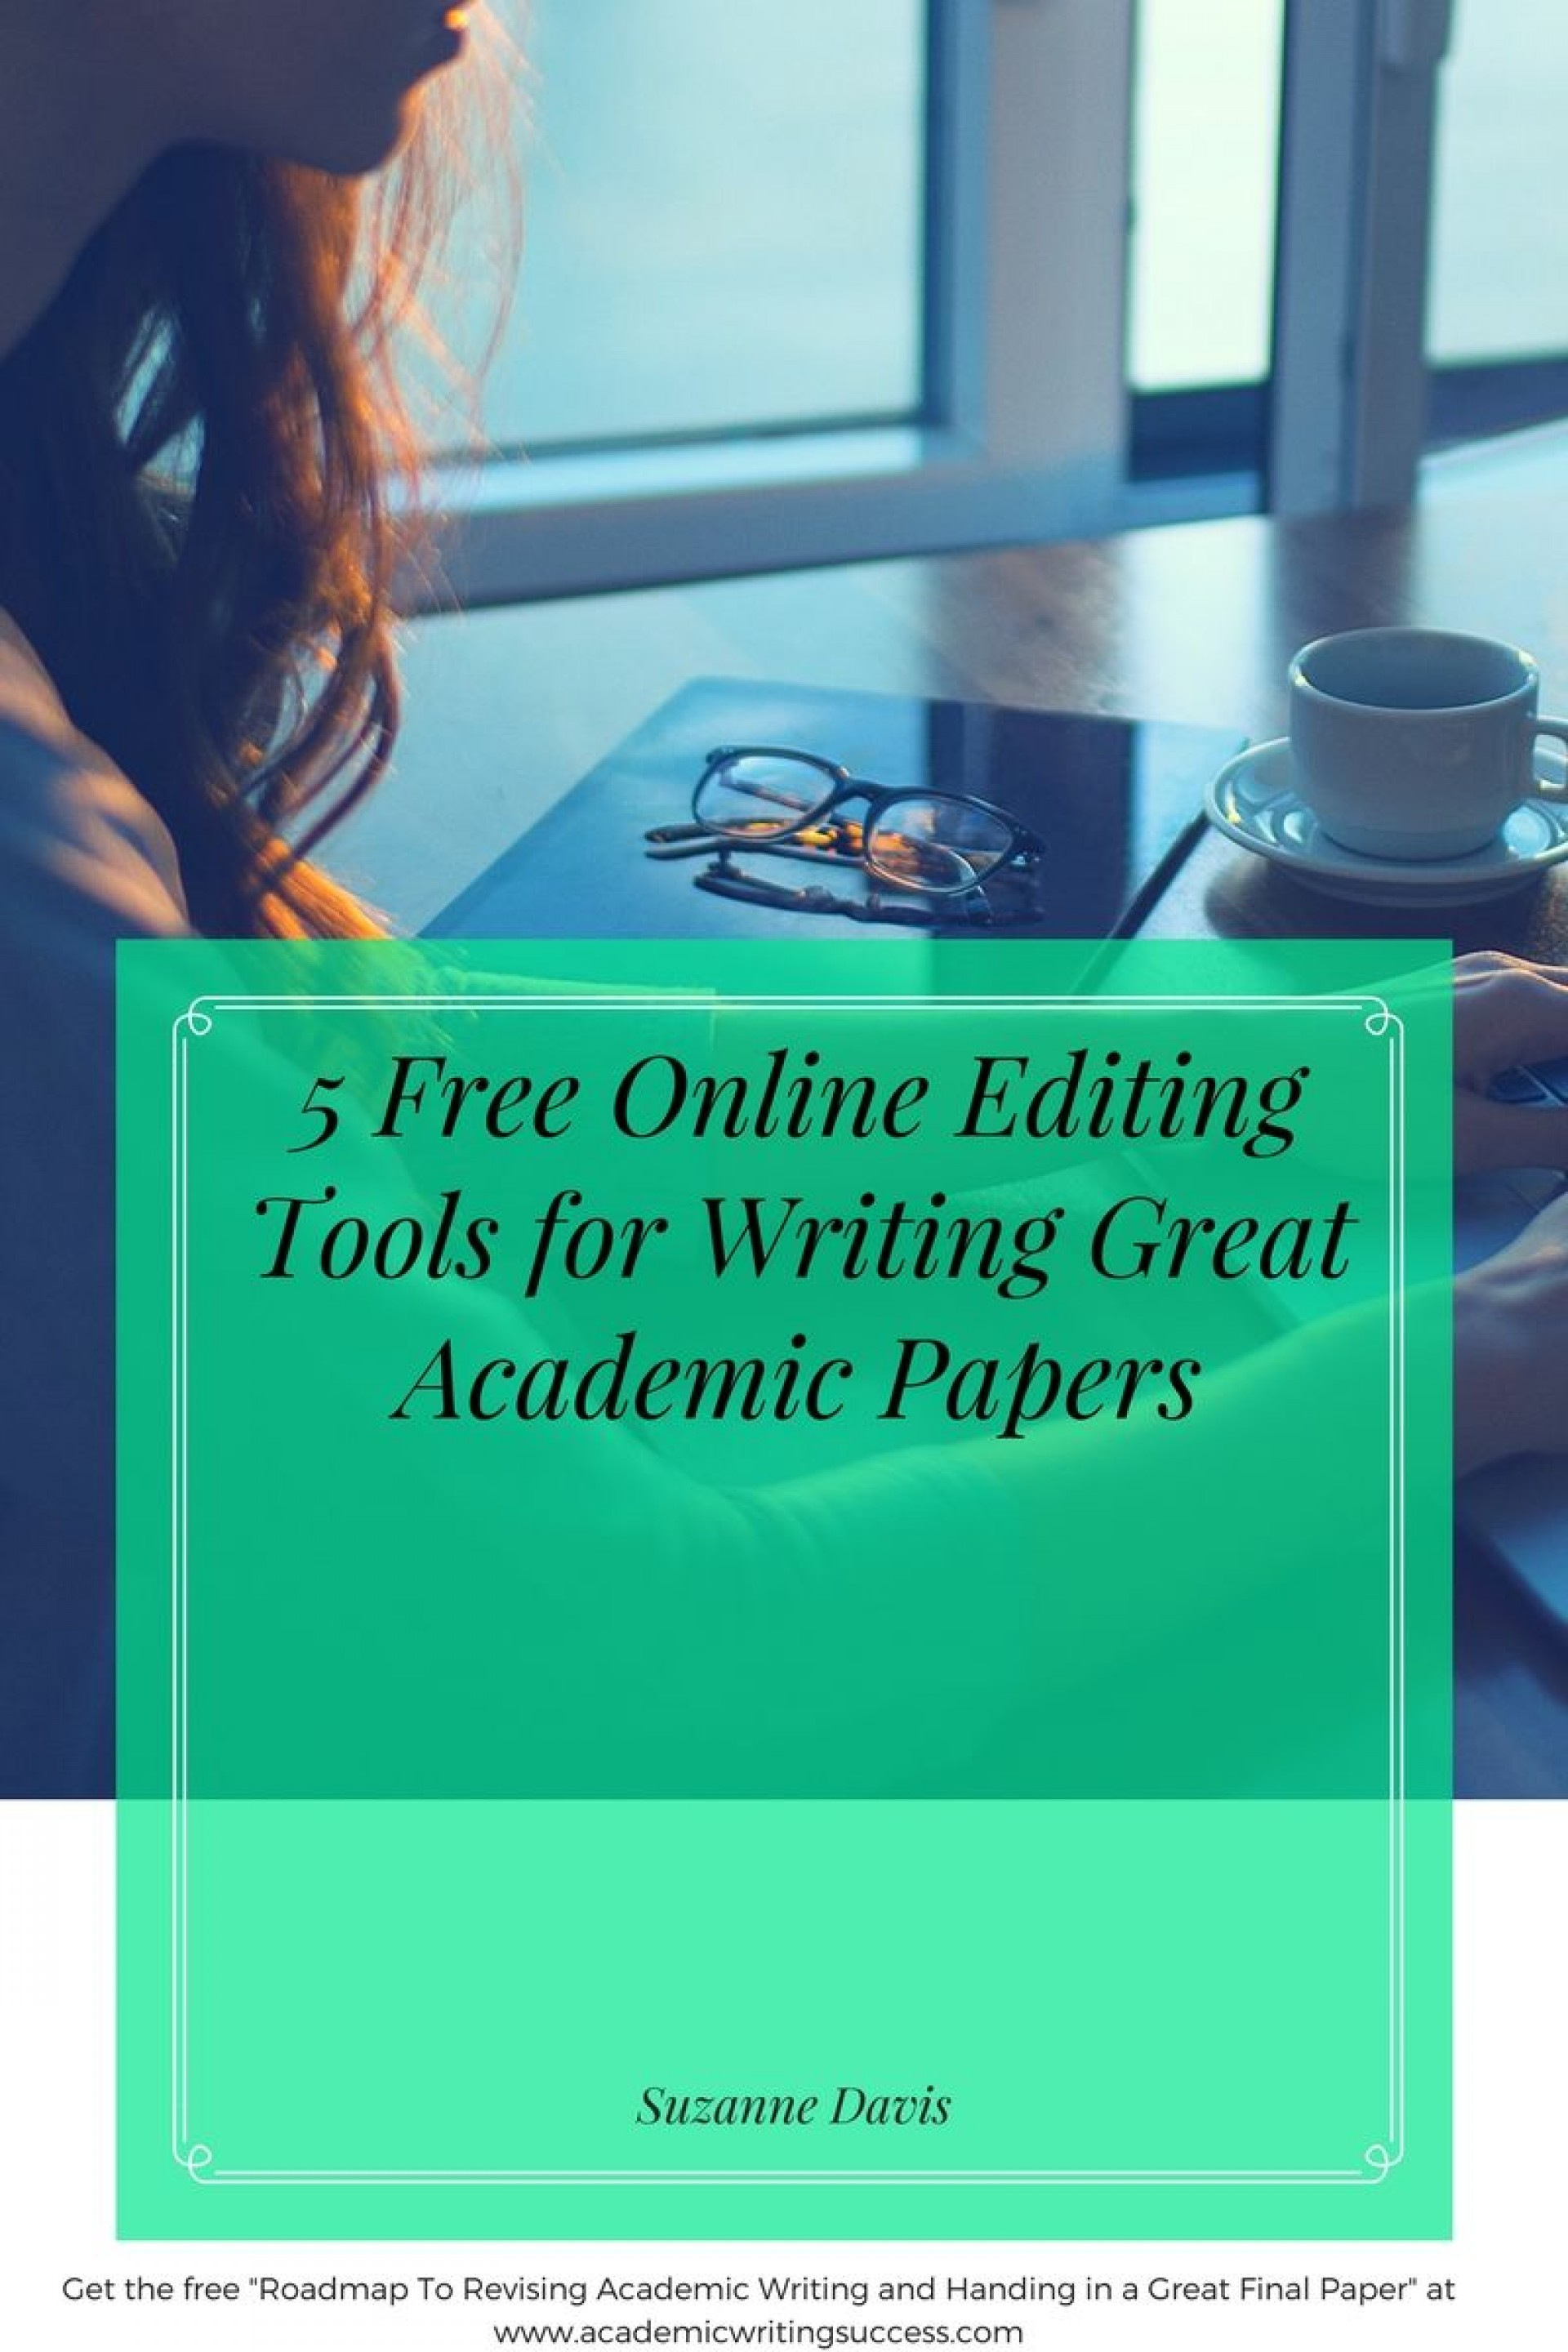 029 Research Paper Free Online Stirring Papers Plagiarism Checker Psychology Download 1920